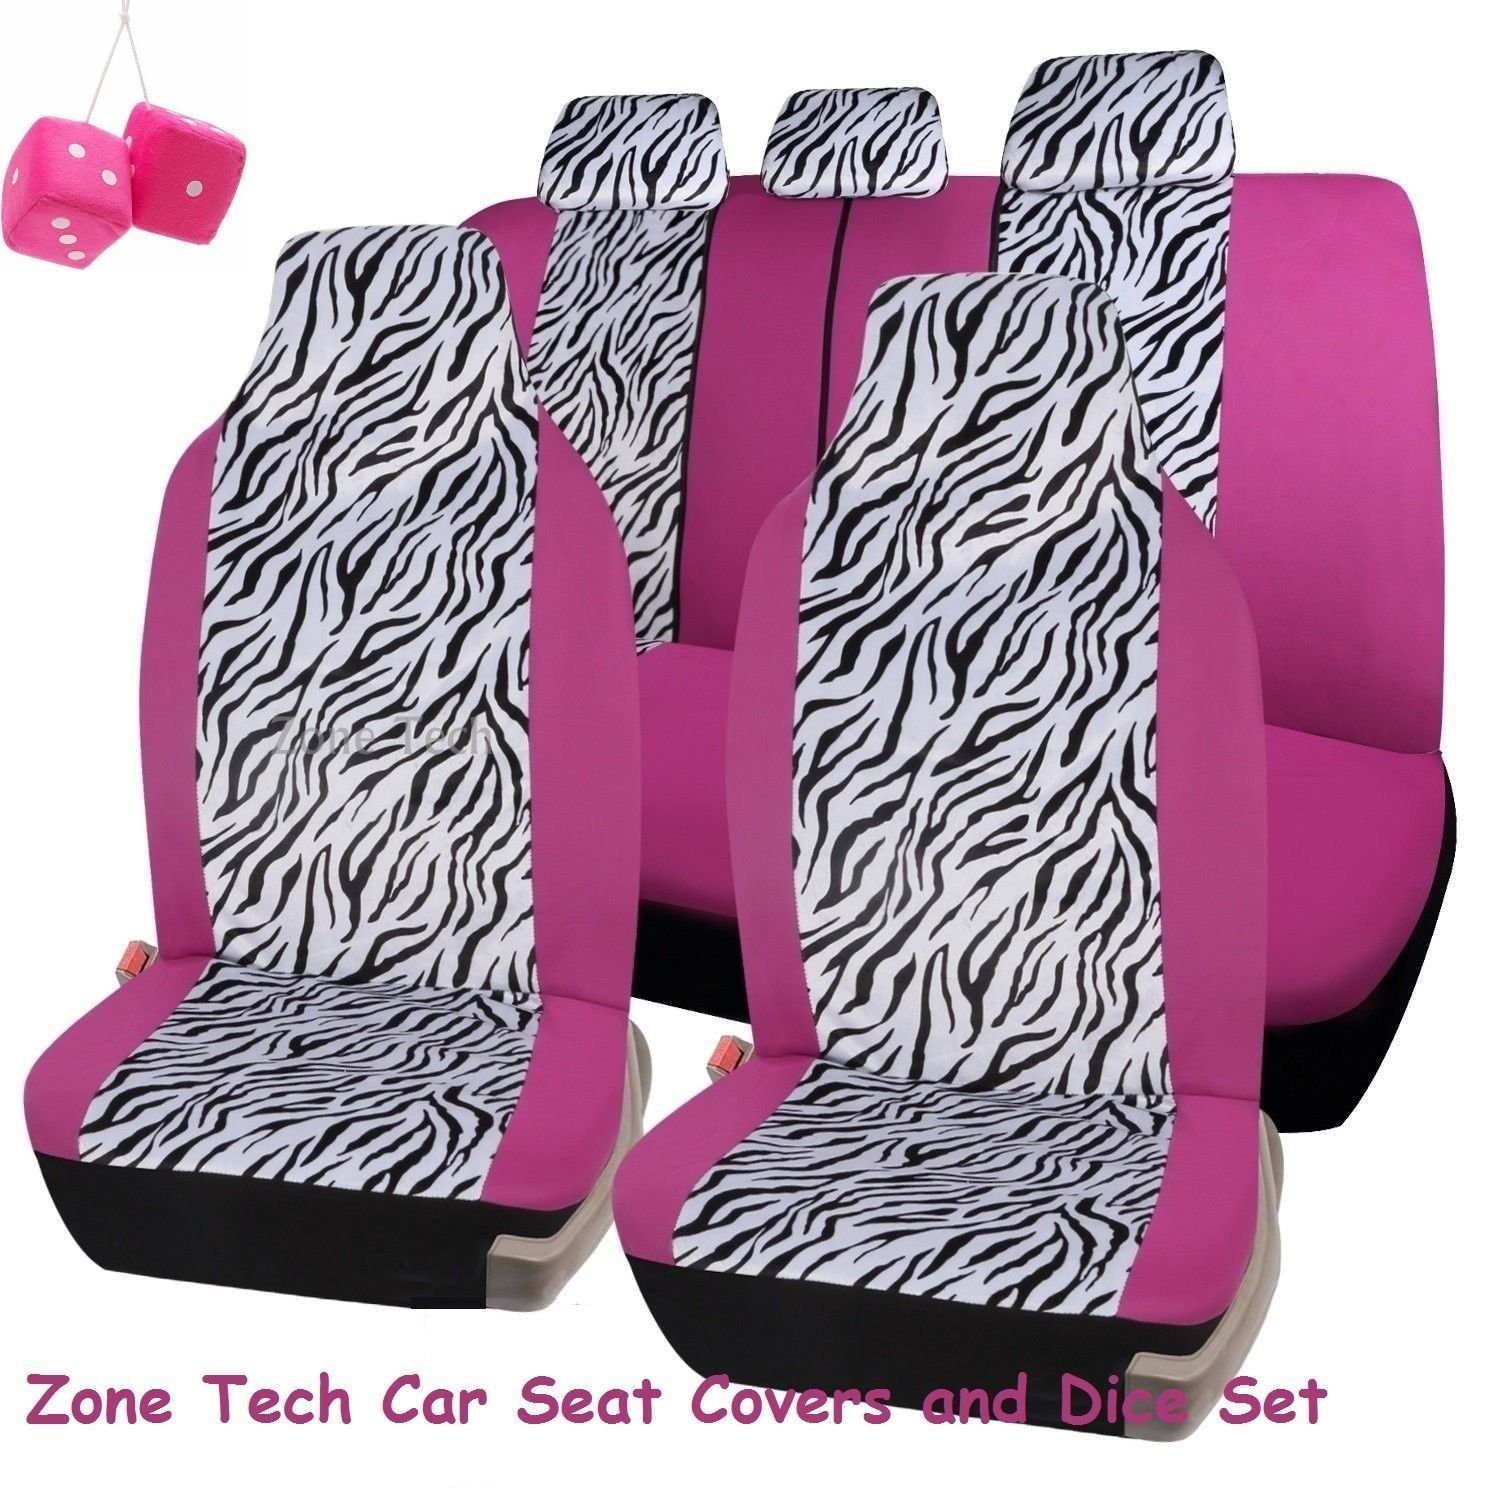 Zone Tech Universal Fit Premium Quality 100% Waterproof Breathable 7 Piece Pink and Zebra Seat Cover Set + Pair of Pink Plush Hanging Fuzzy Dice Set